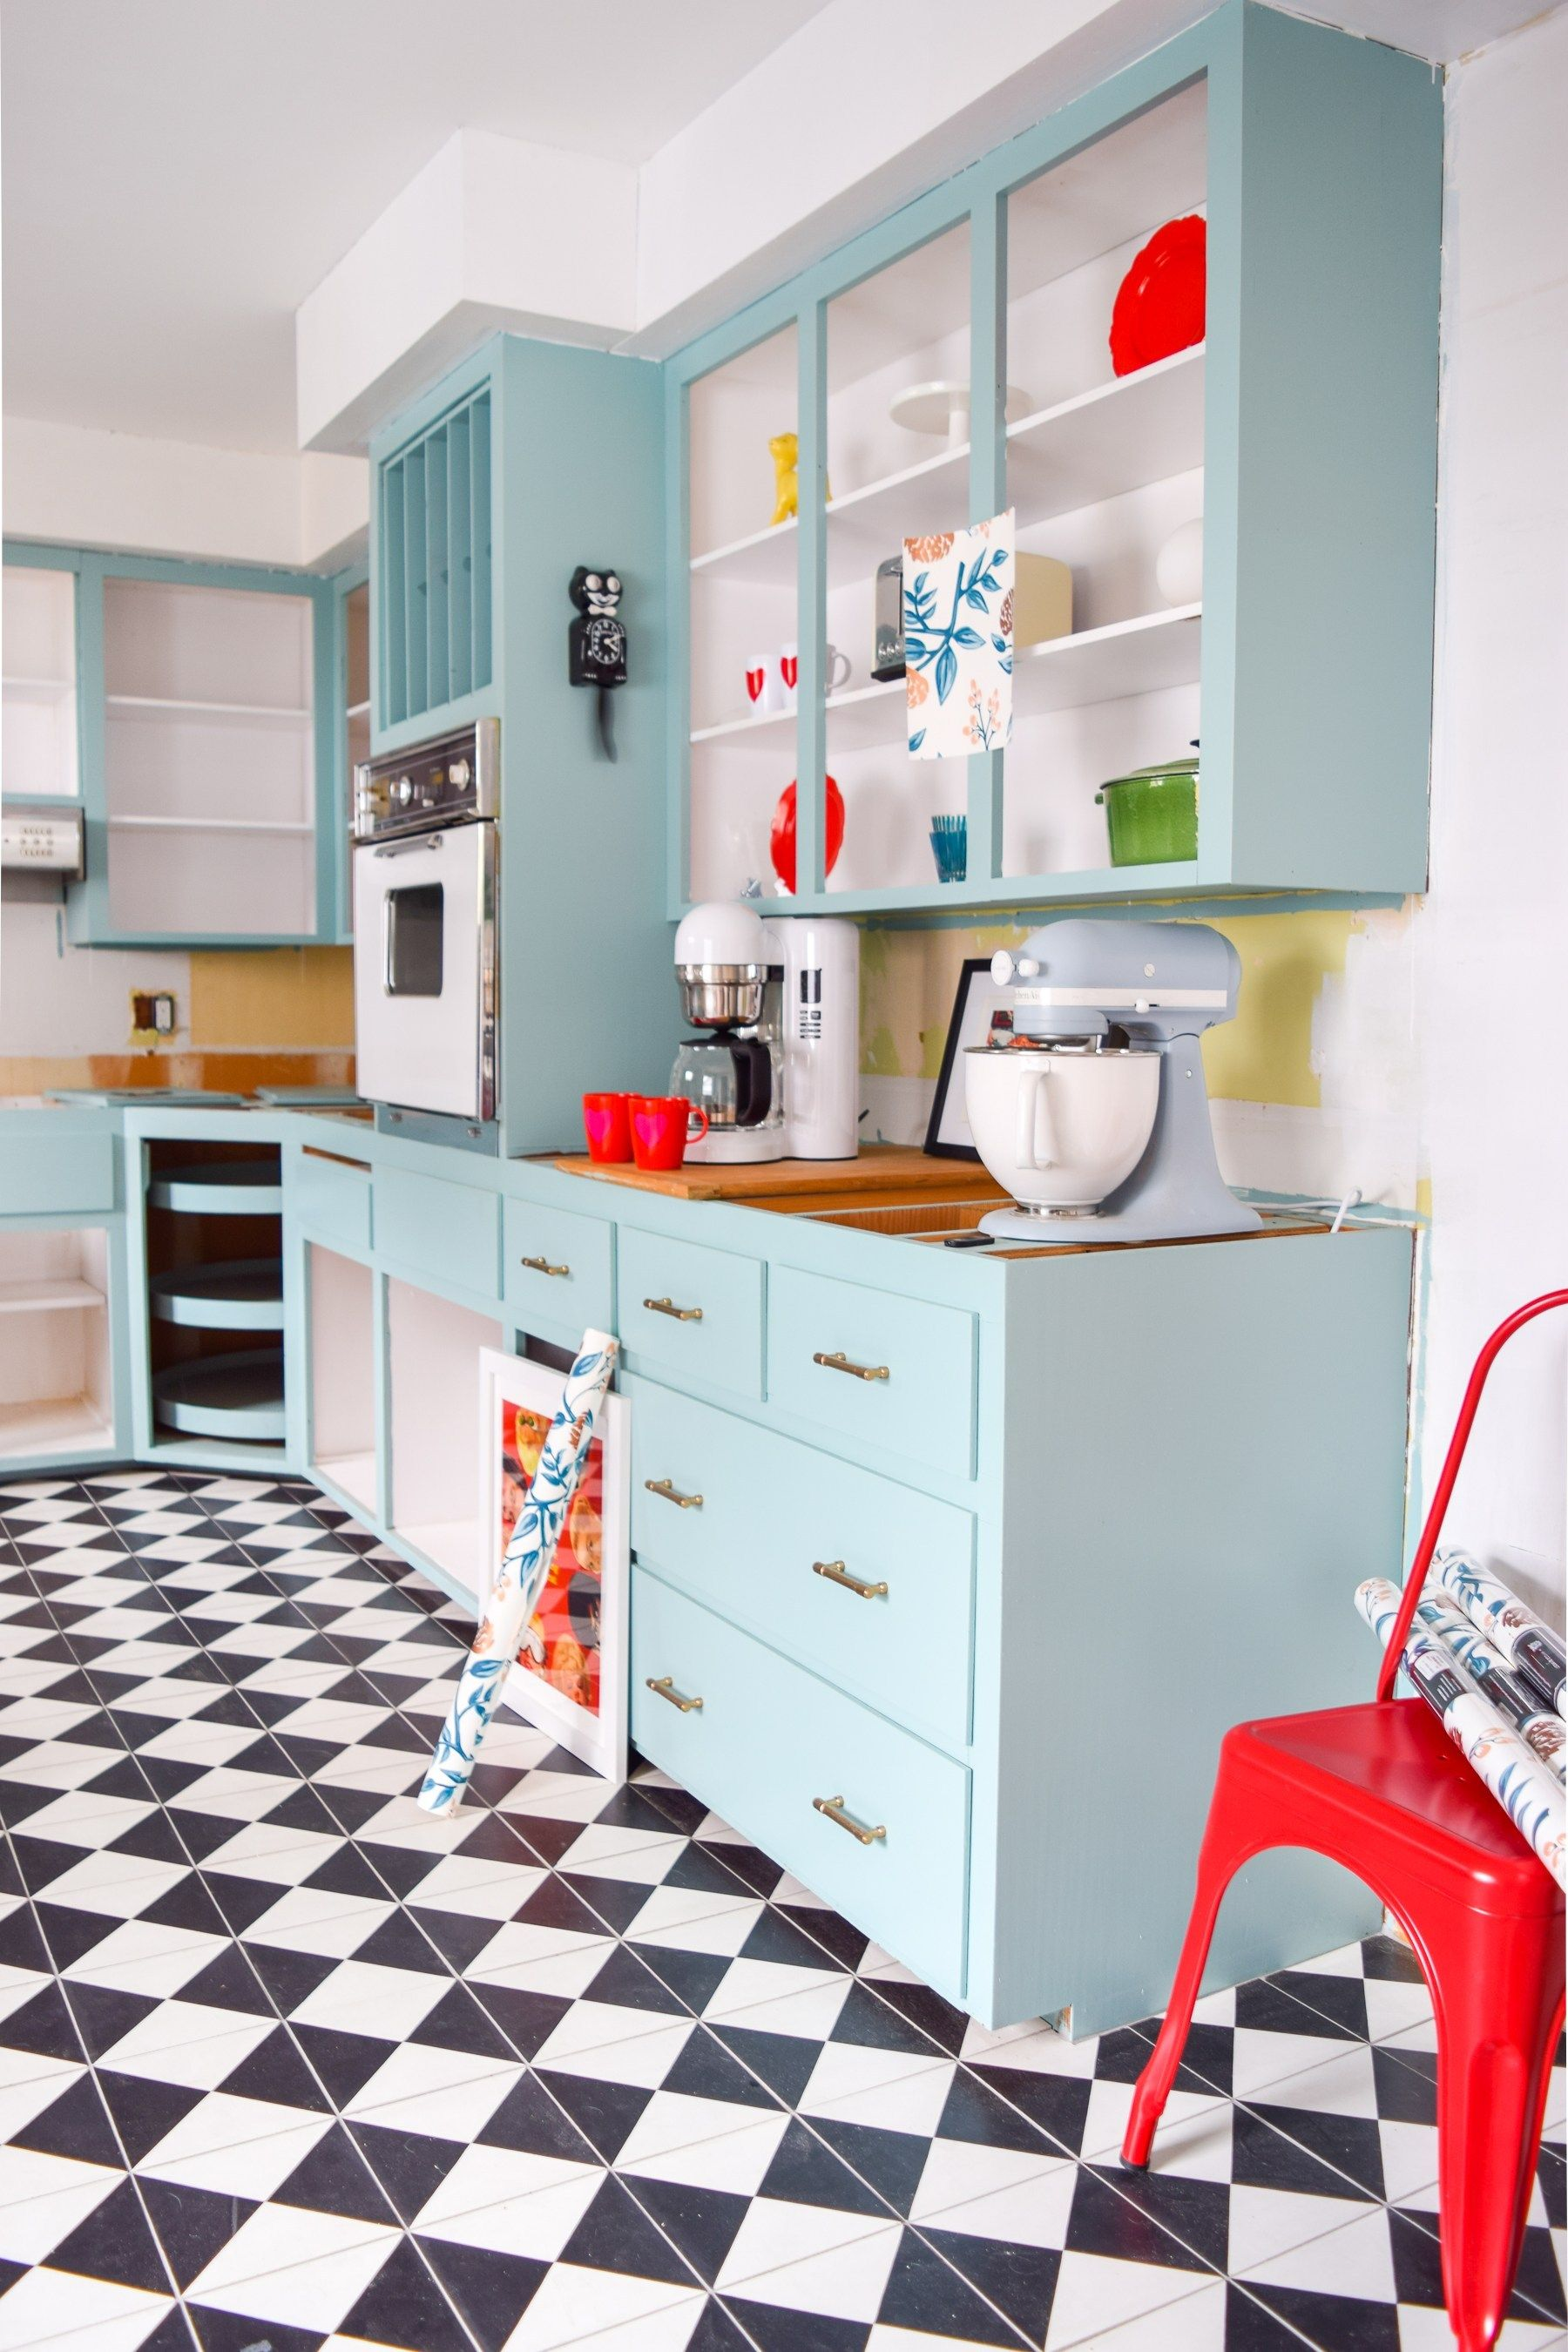 kitchen, white wall, blue cabinet, red stool